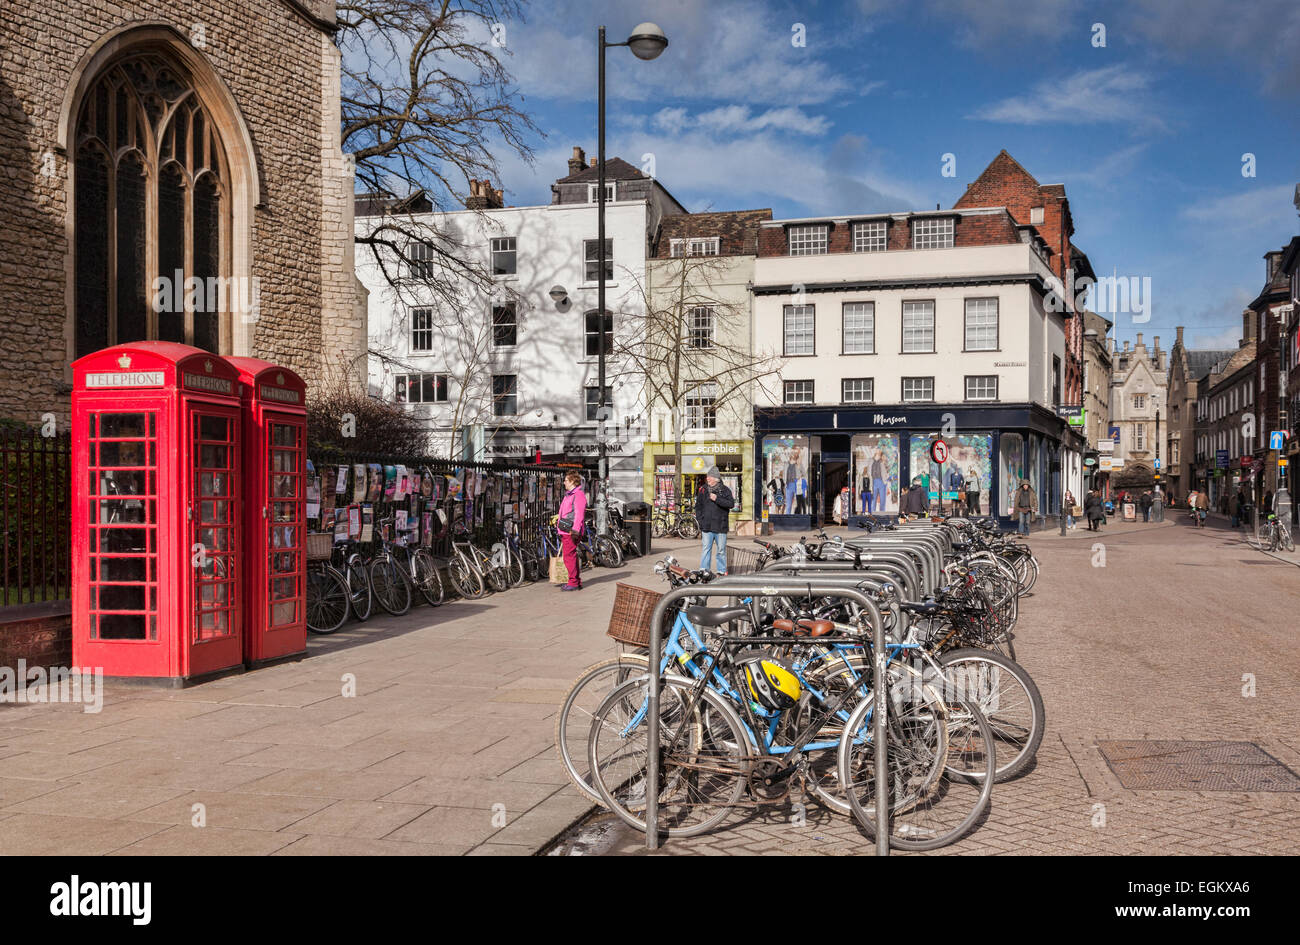 Cambridge street scene - St Andrew's Street, with bicycles, red English telephone boxes, shops and old buildings. - Stock Image